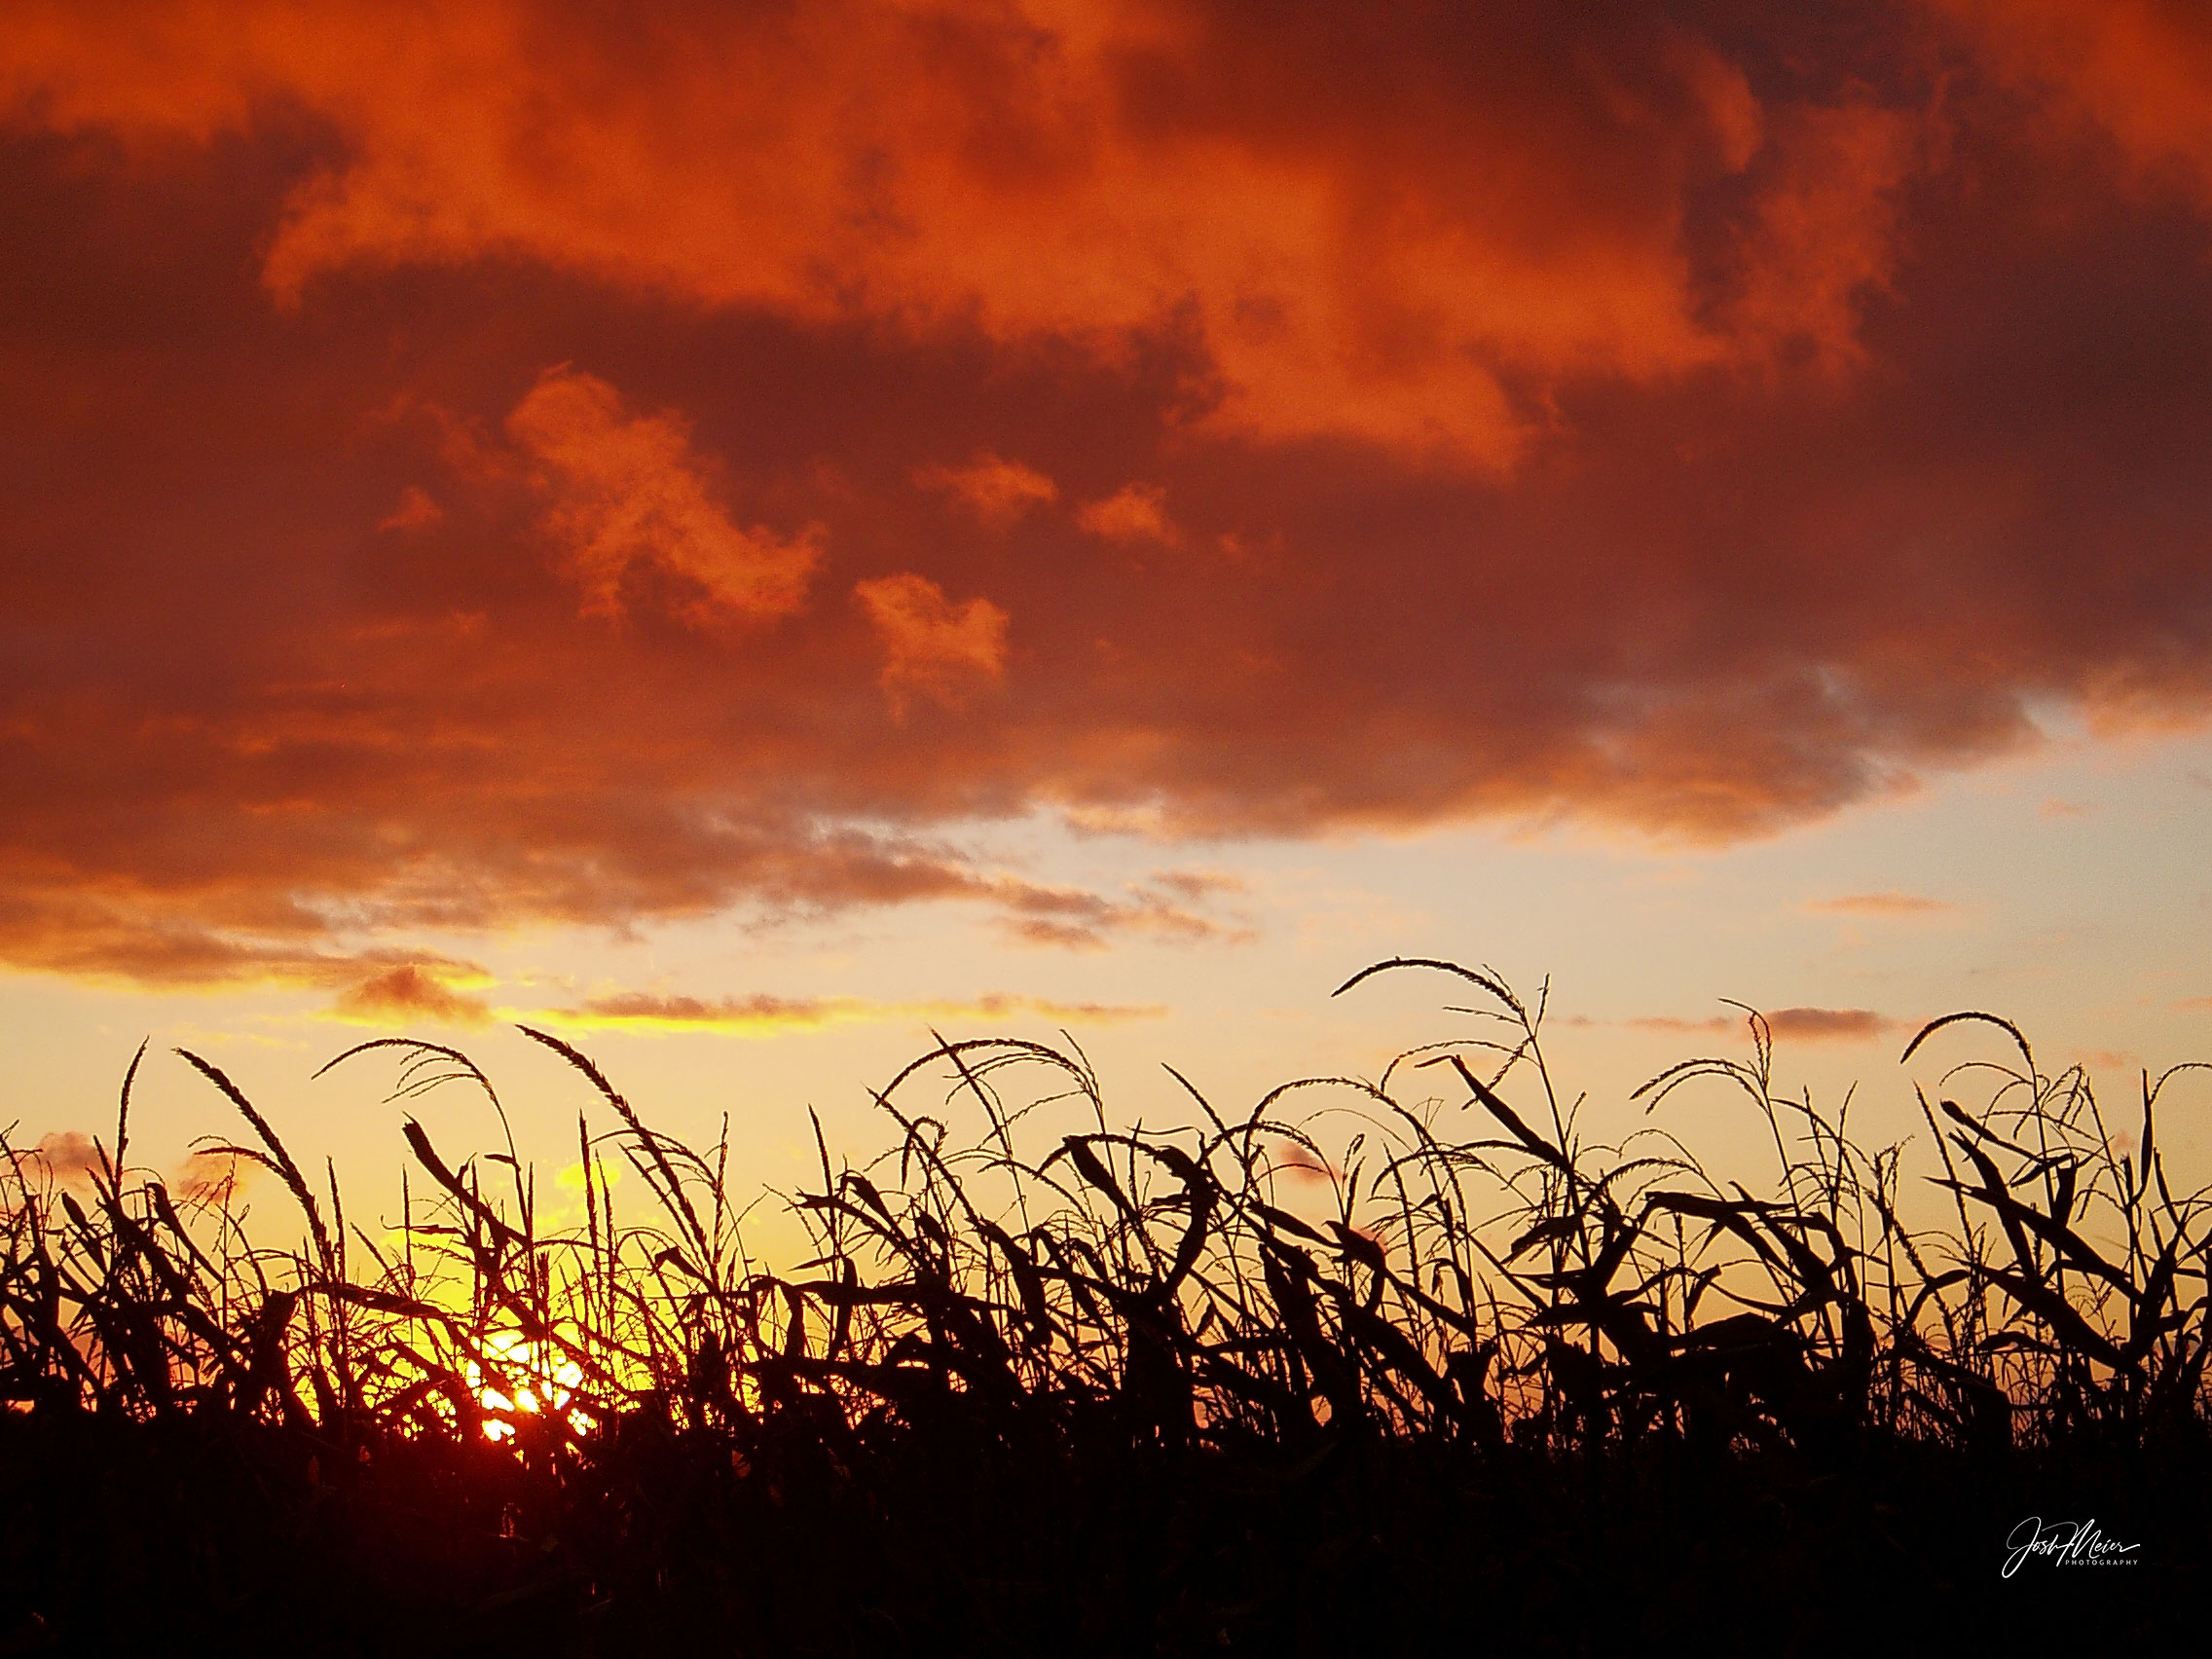 Storm clouds roll over a silhouetted cornfield at sunset west of Tipton, Iowa.